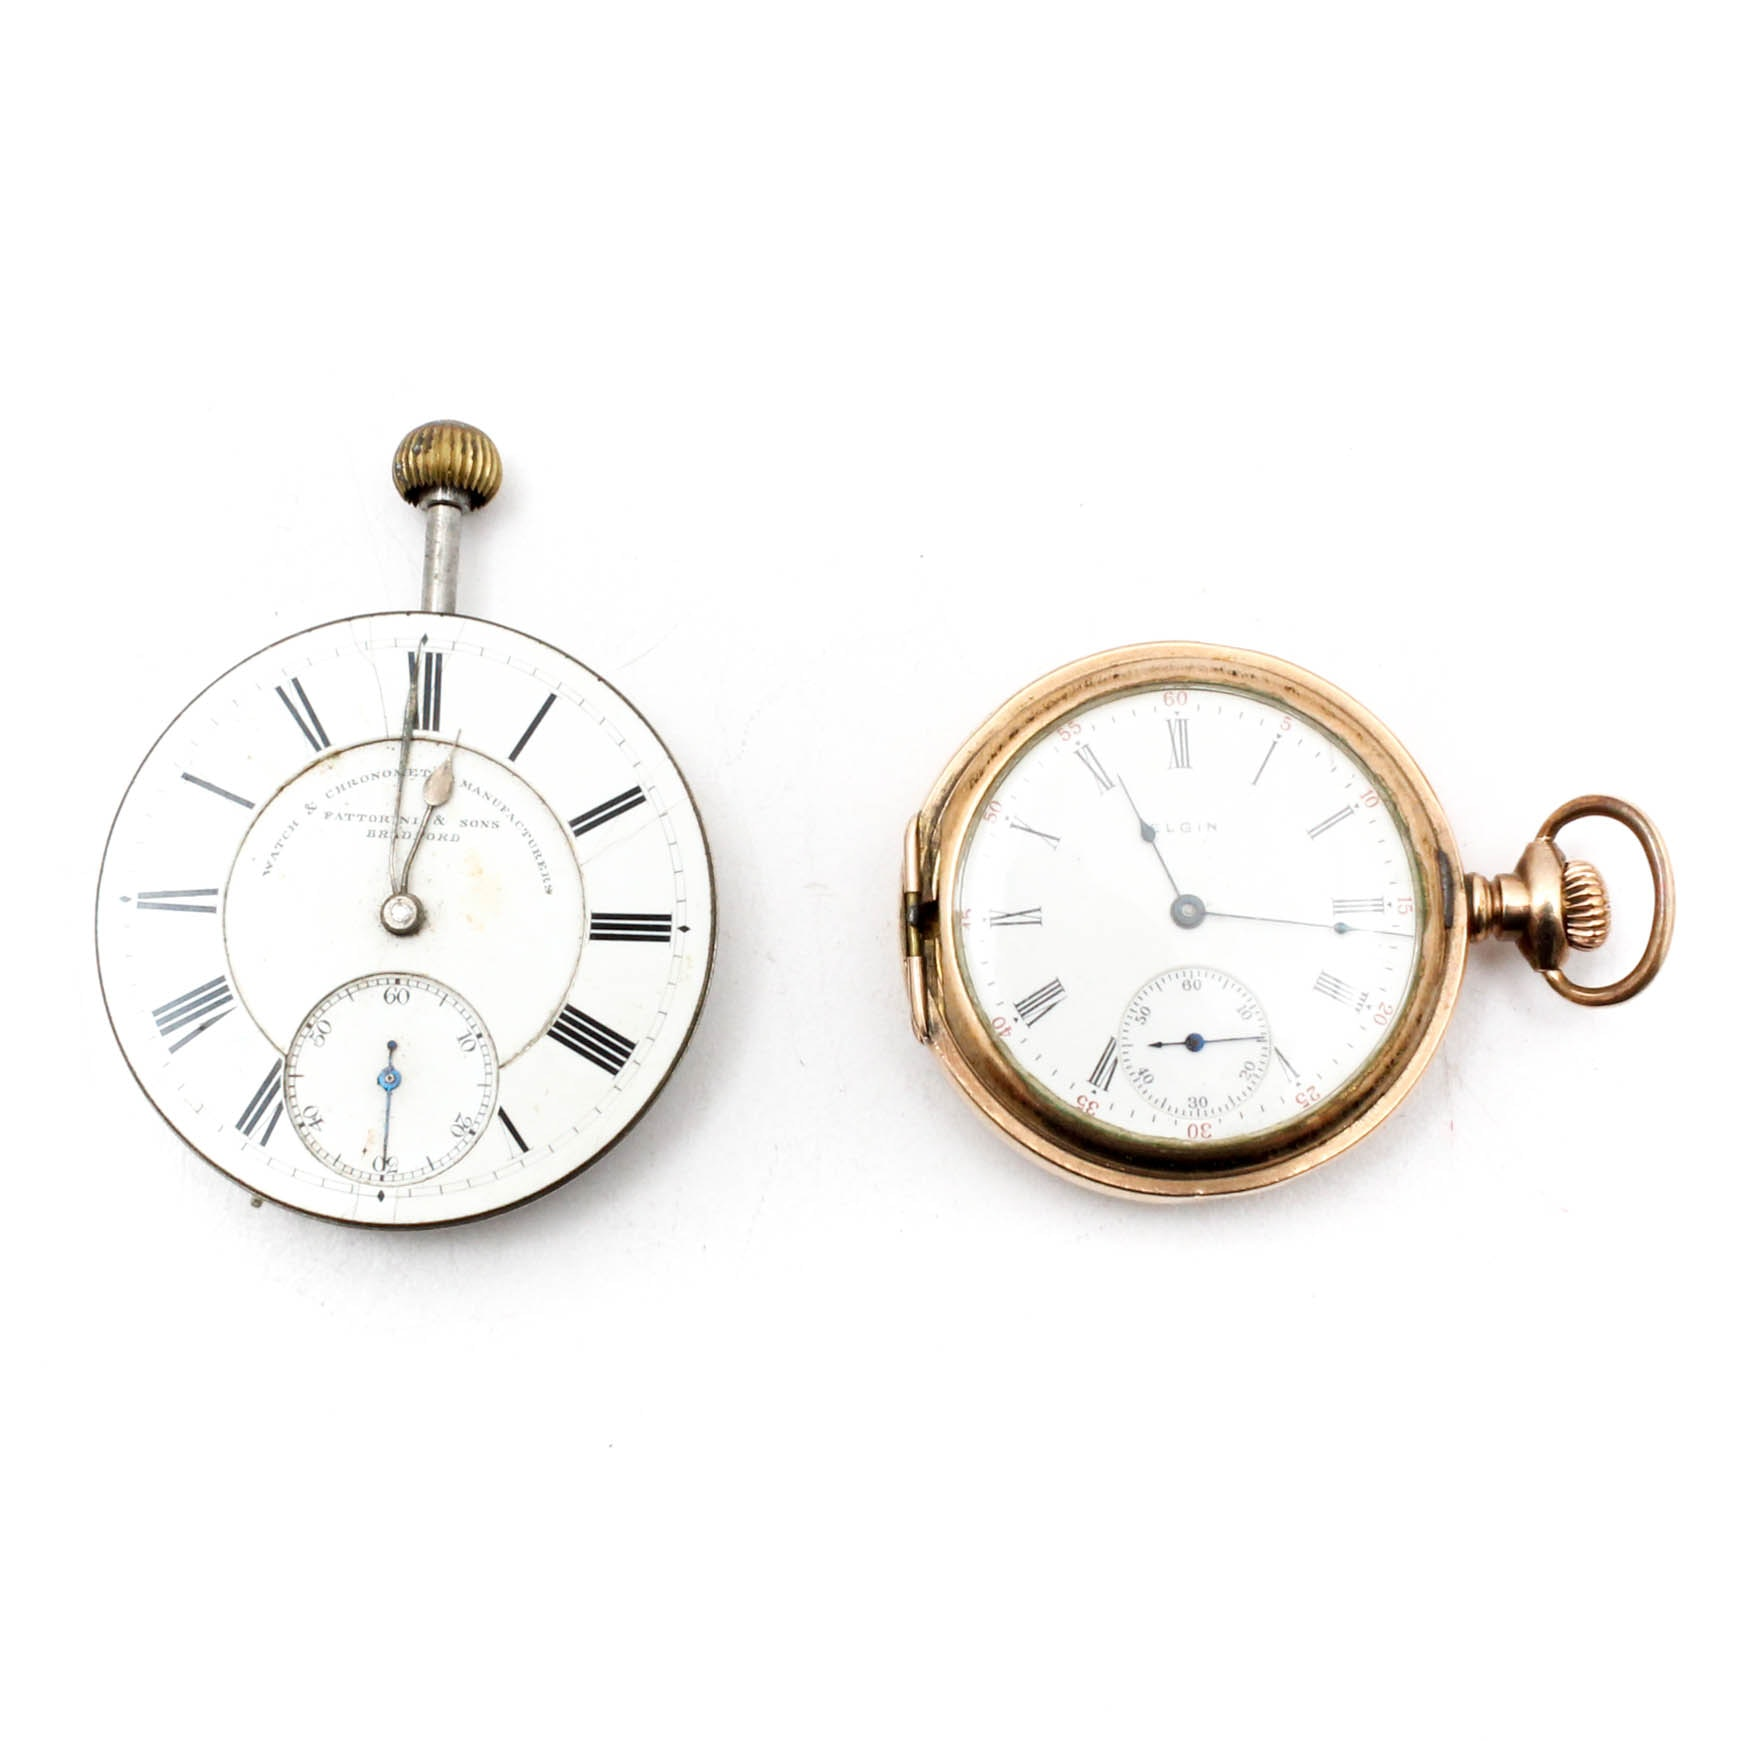 1911 Elgin 15 Jewel Gold Plated Pocket Watch